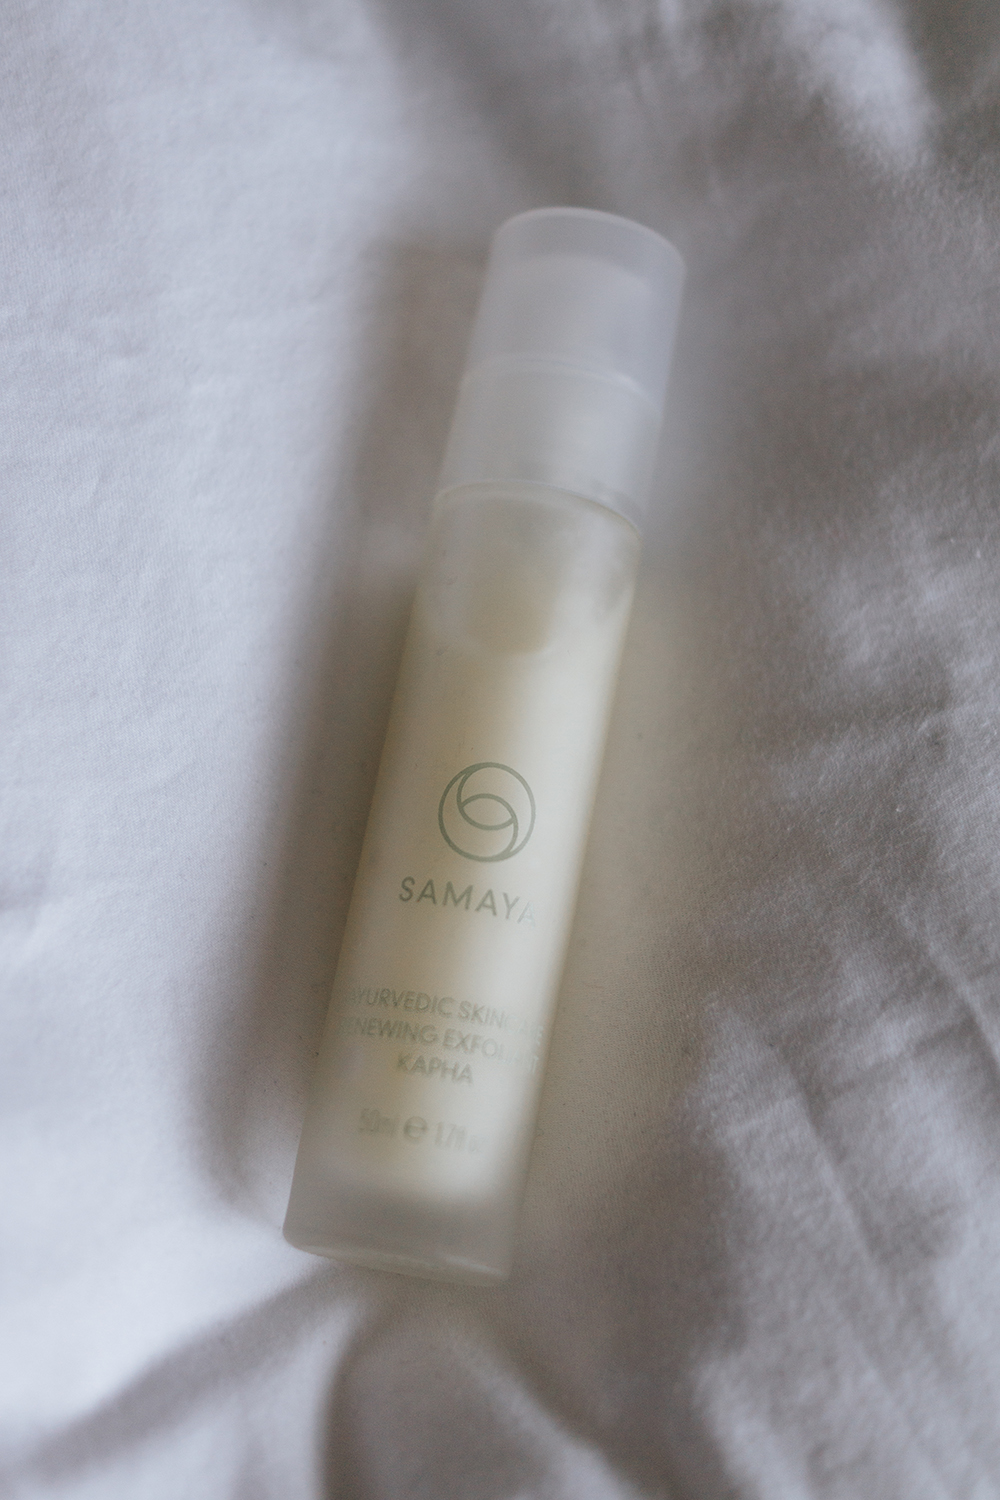 updated-skincare-routine-barely-there-beauty-blog-samaya-exfoliant-review